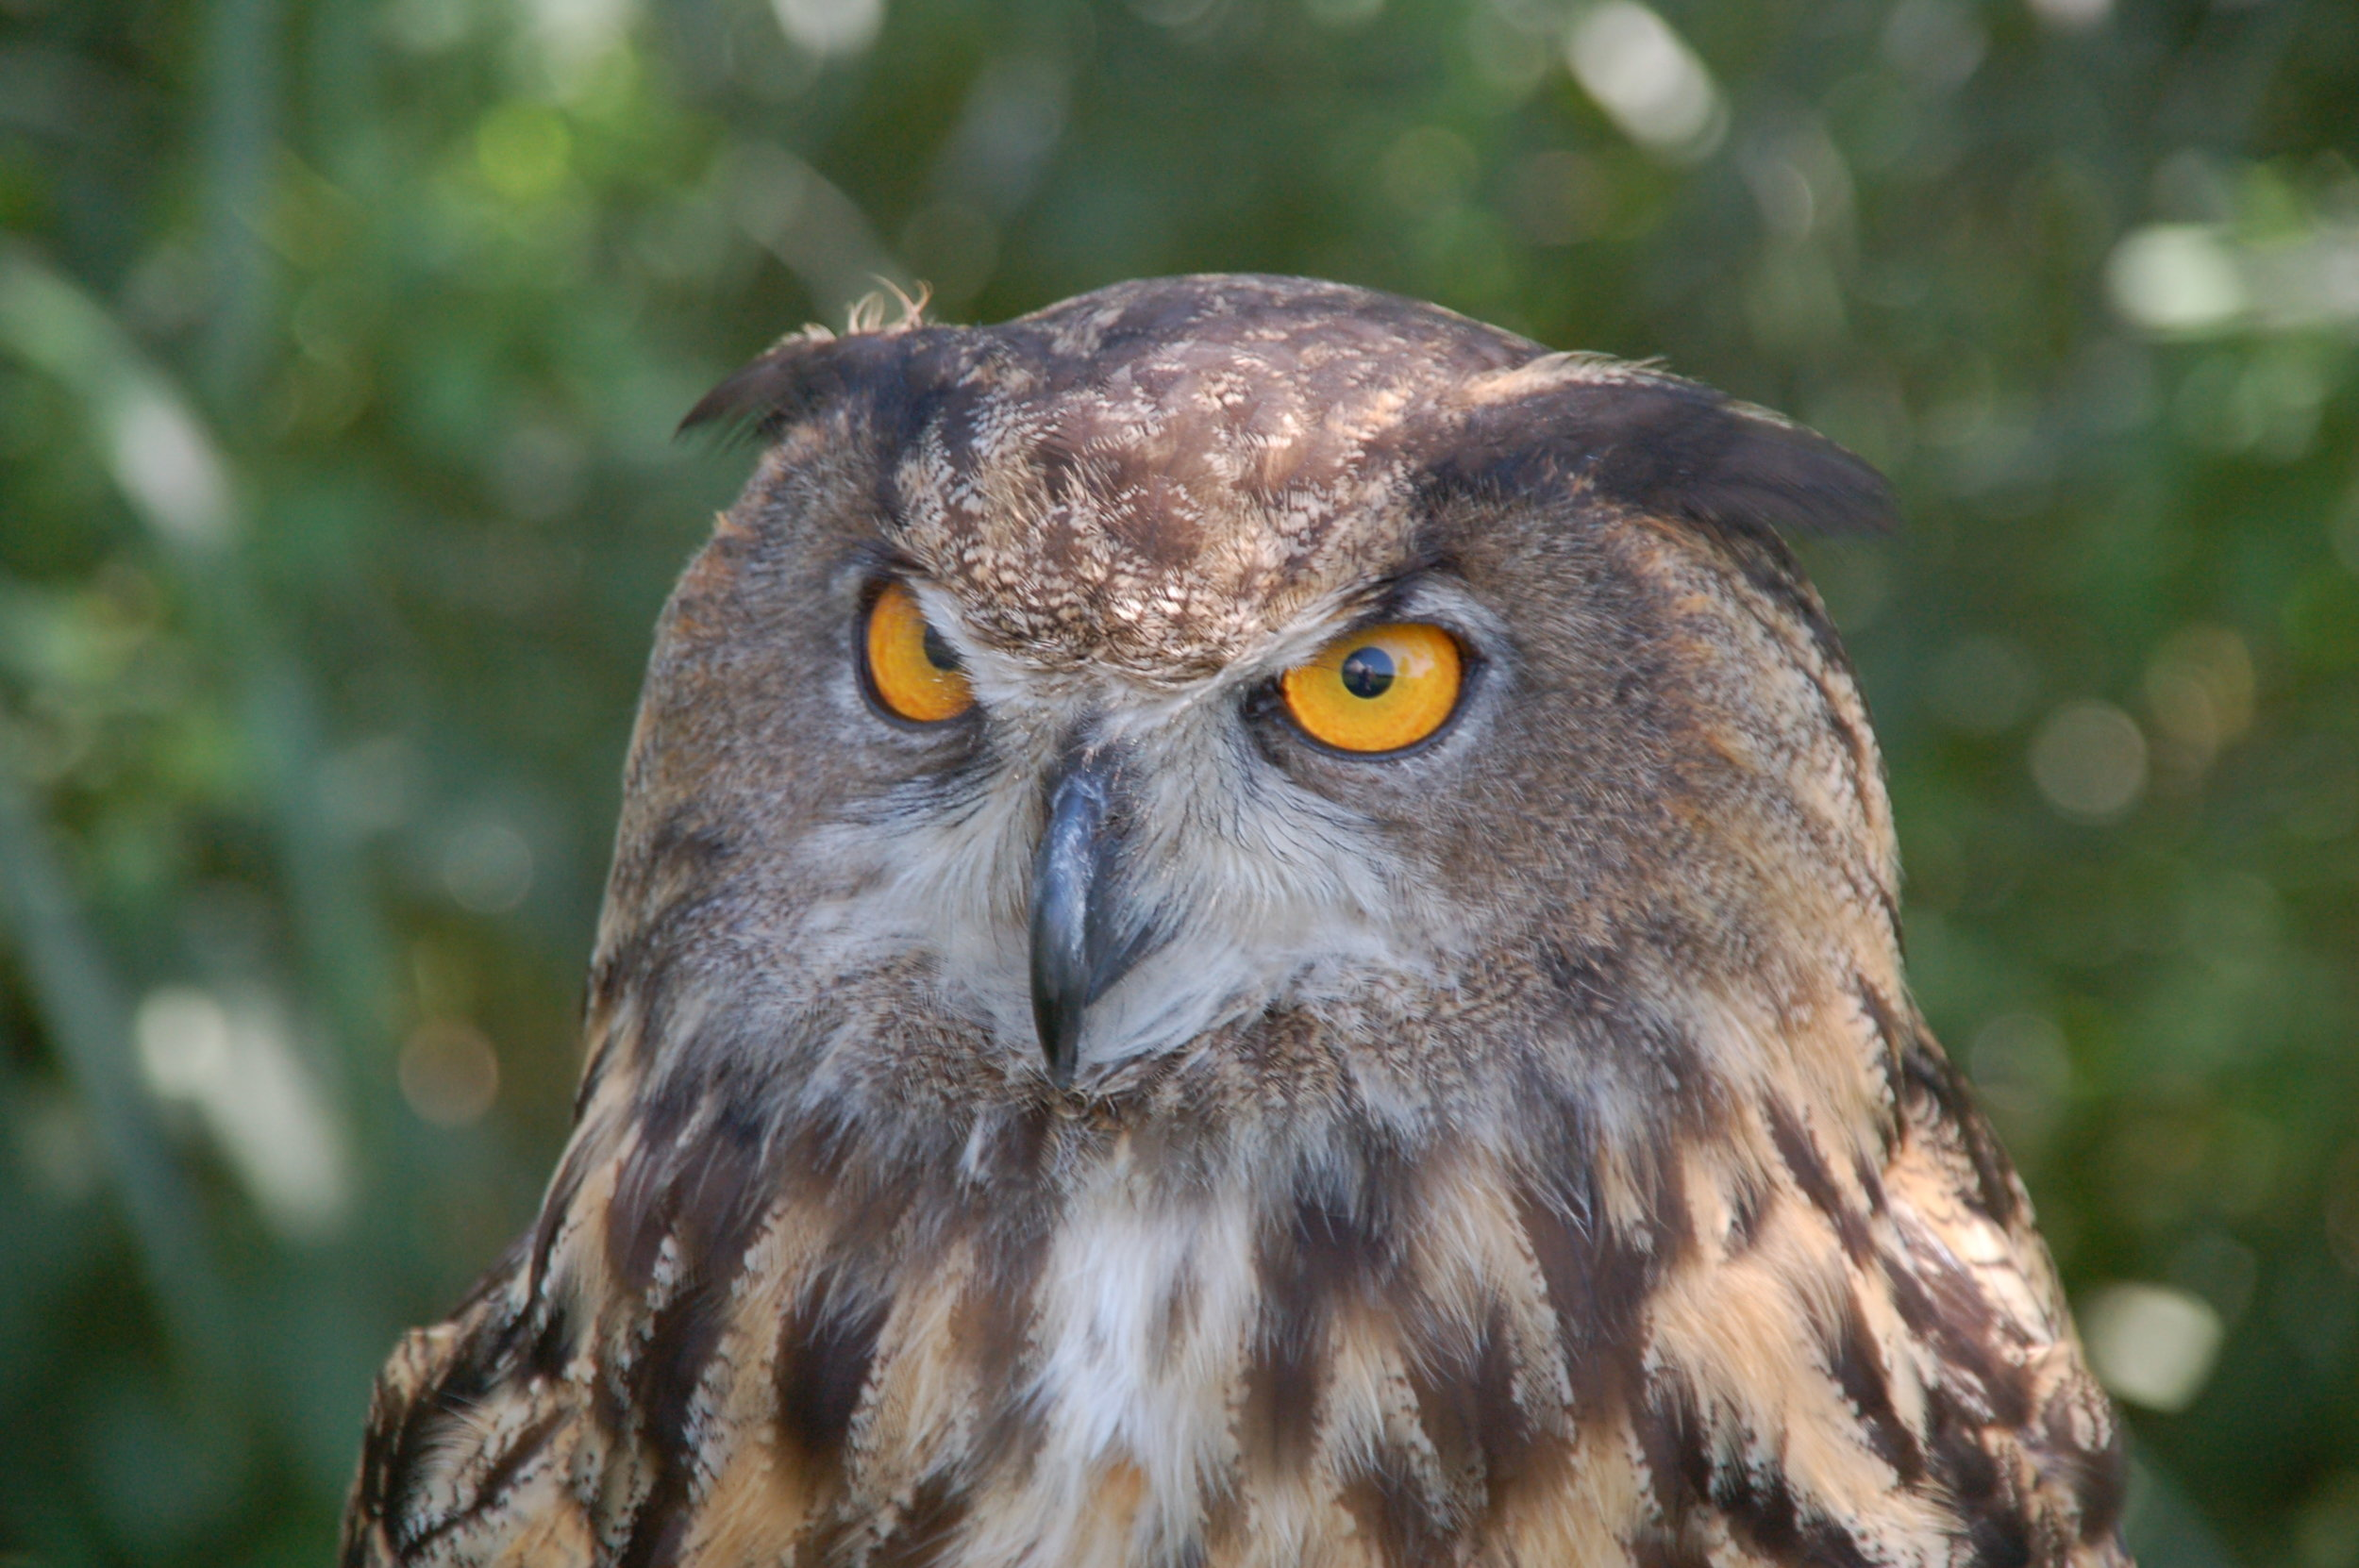 Great Horned Owl - the largest local owl that nests here.